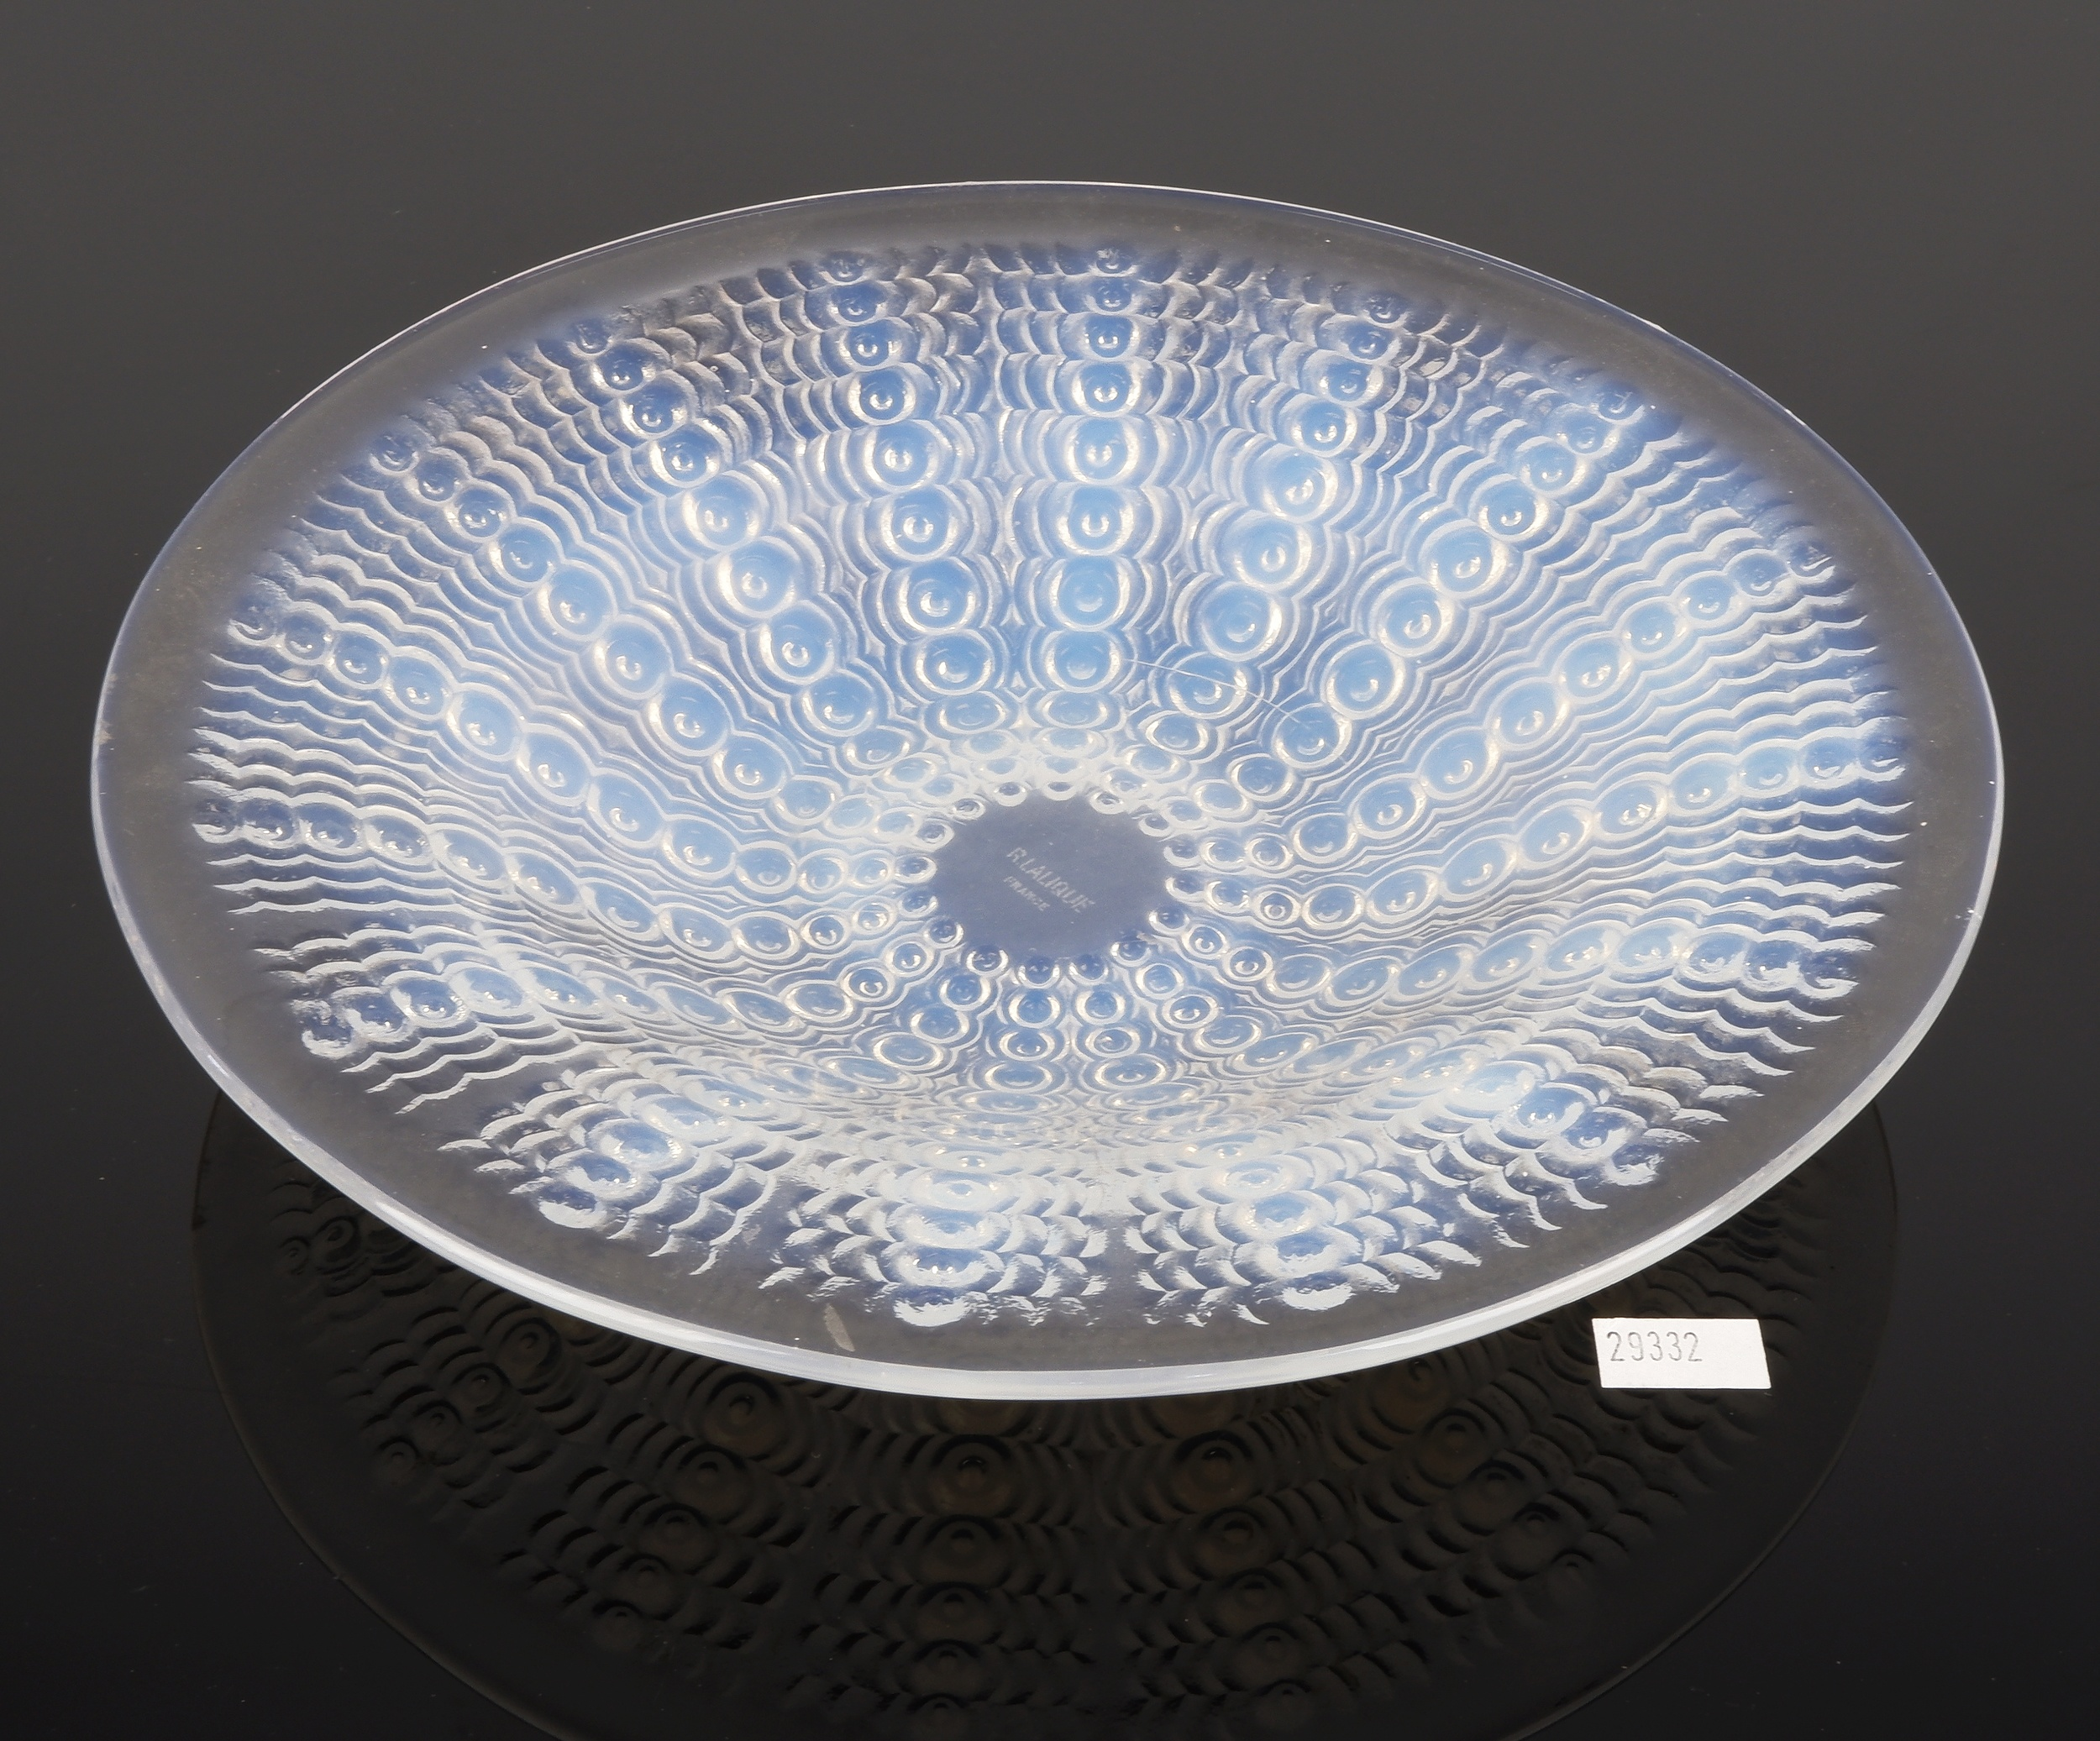 'Rene Lalique Ouverte Oursins Bowl in Opalescent Glass, Model 3310 Circa 1935'